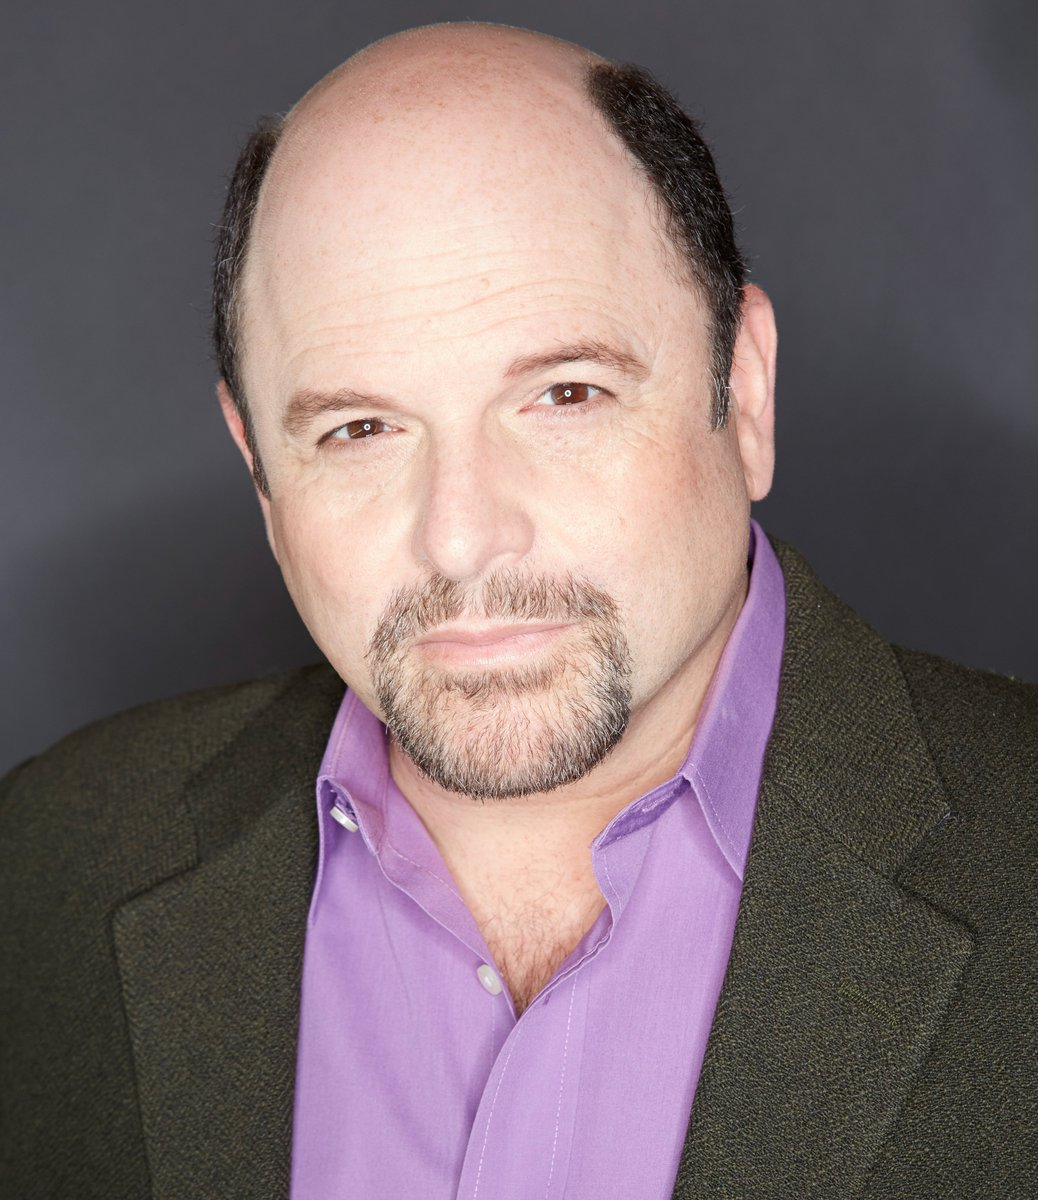 test Twitter Media - We're THRILLED to announce our latest addition to the Virtual Cabaret event! @IJasonAlexander will be joining NBCC to help us stop breast cancer on Dec. 6. Don't miss out on the excitement and get your tickets now! https://t.co/uSAV4YXZKT https://t.co/vYZTqzLhW2